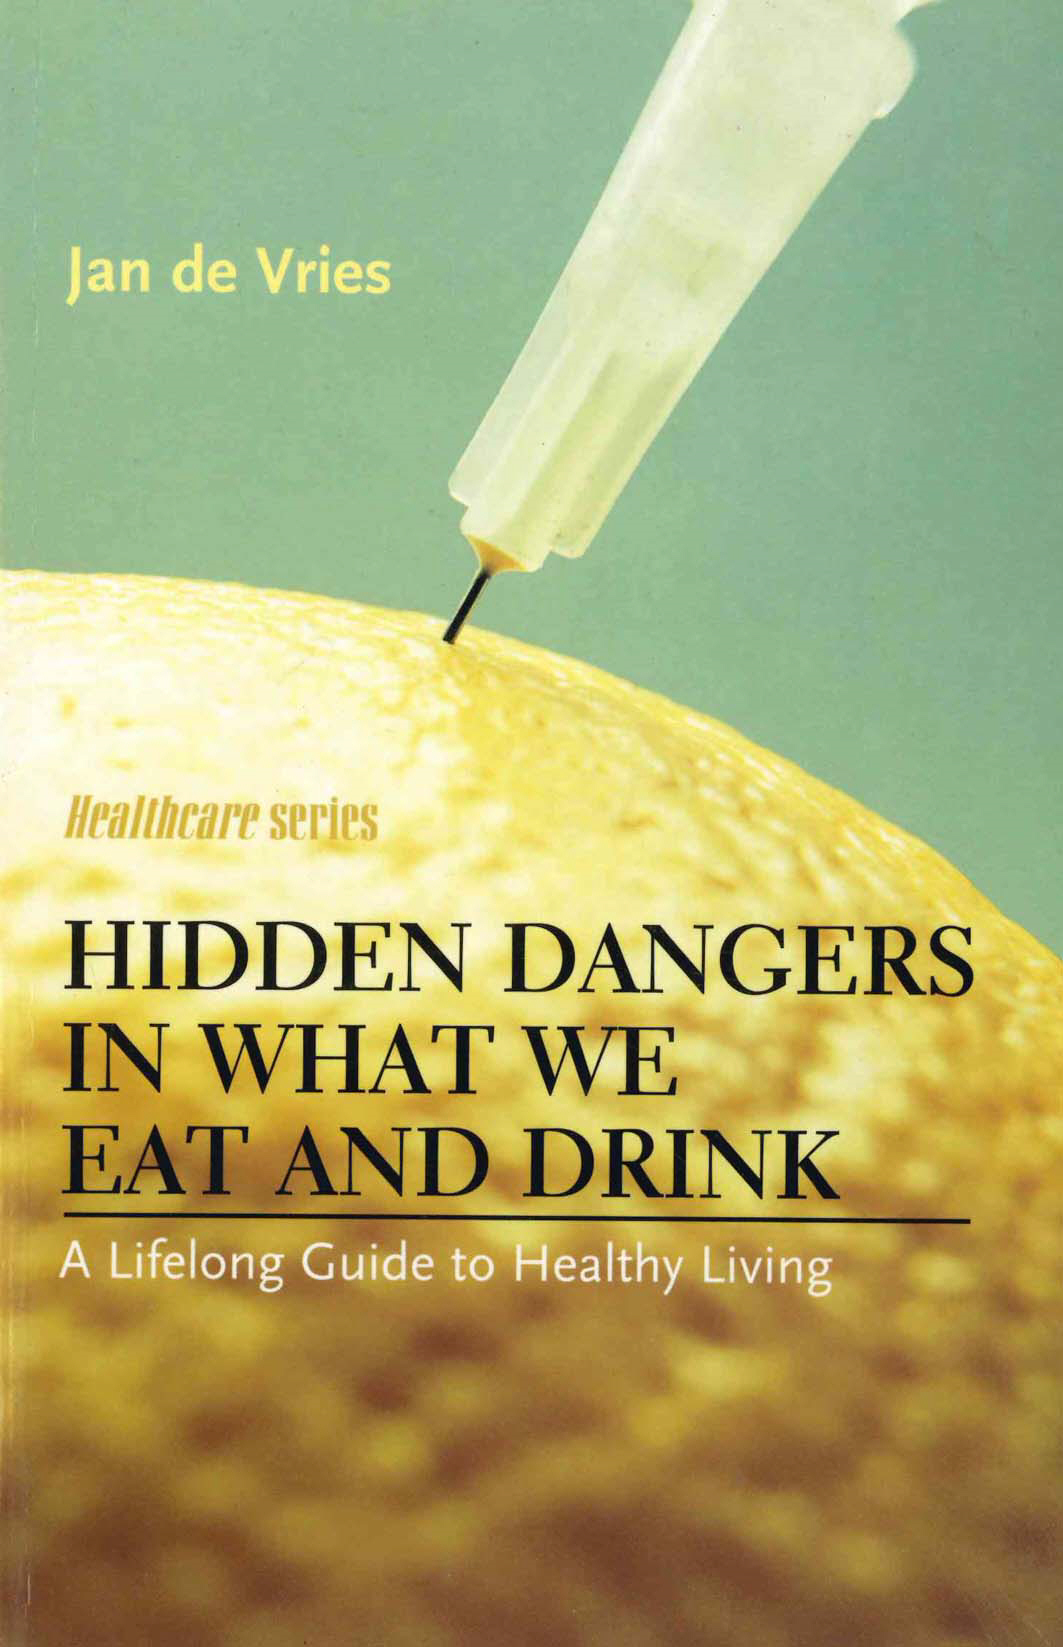 Hidden Dangers in What We Eat and Drink A Lifelong Guide to Healthy Living